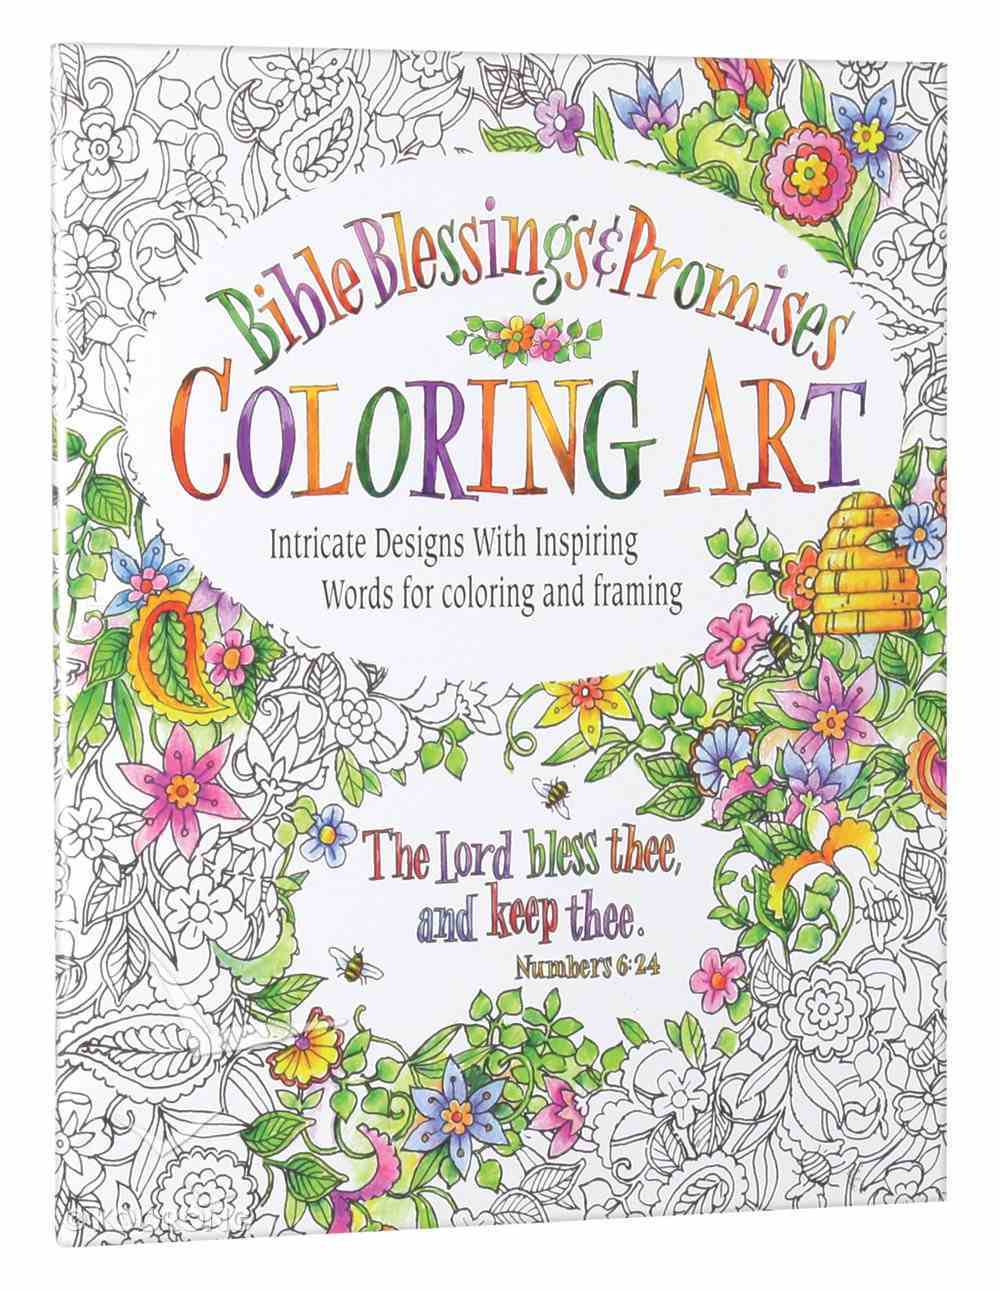 Bible Blessings and Promises (Adult Coloring Books Series) Paperback